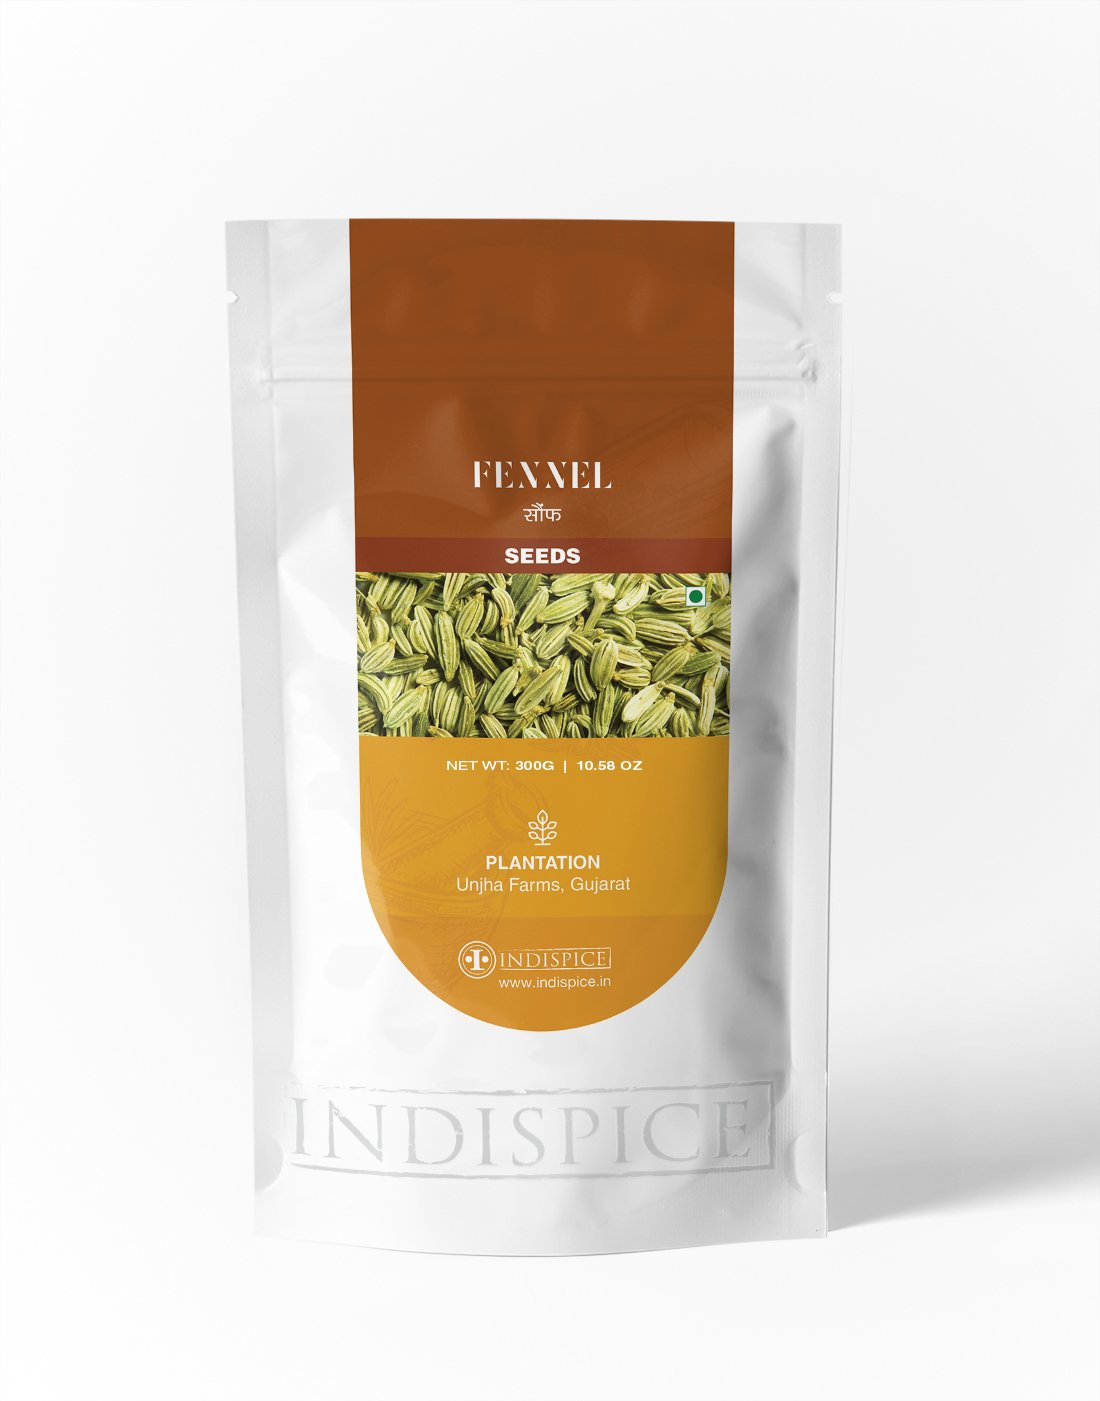 IndiSpice Indian Fennel Seed | Sourced from finest Indian Plantations (10.58Oz)